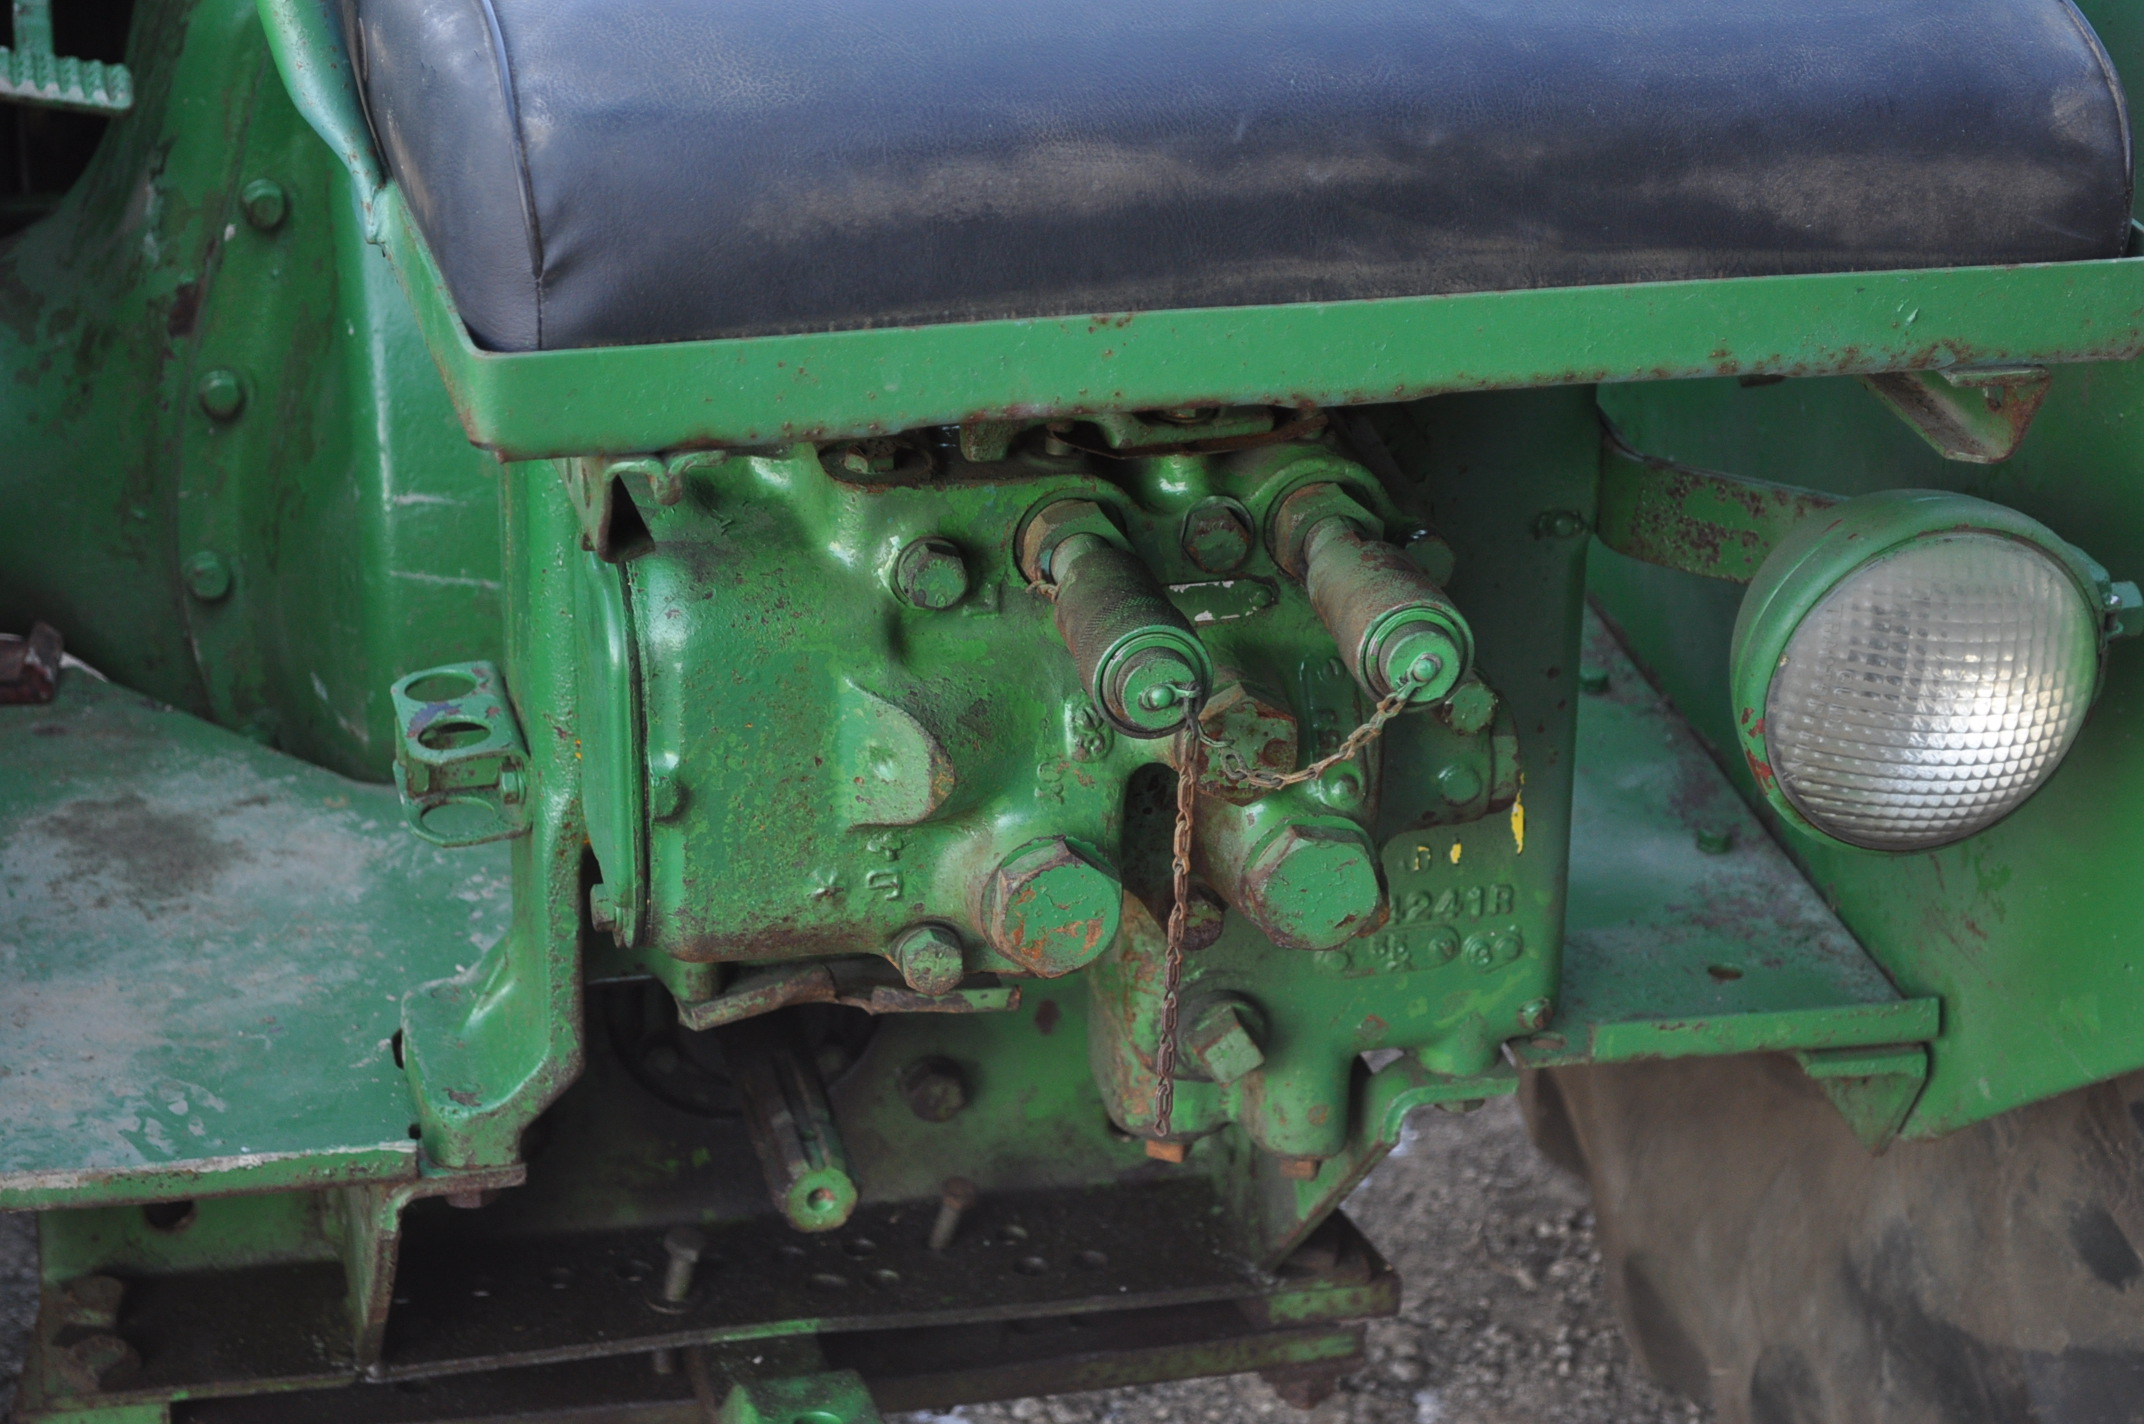 John Deere AR tractor, styled, 14.9-26 rear, 6.50-16 front, wide front, fenders, gasoline, single - Image 6 of 12